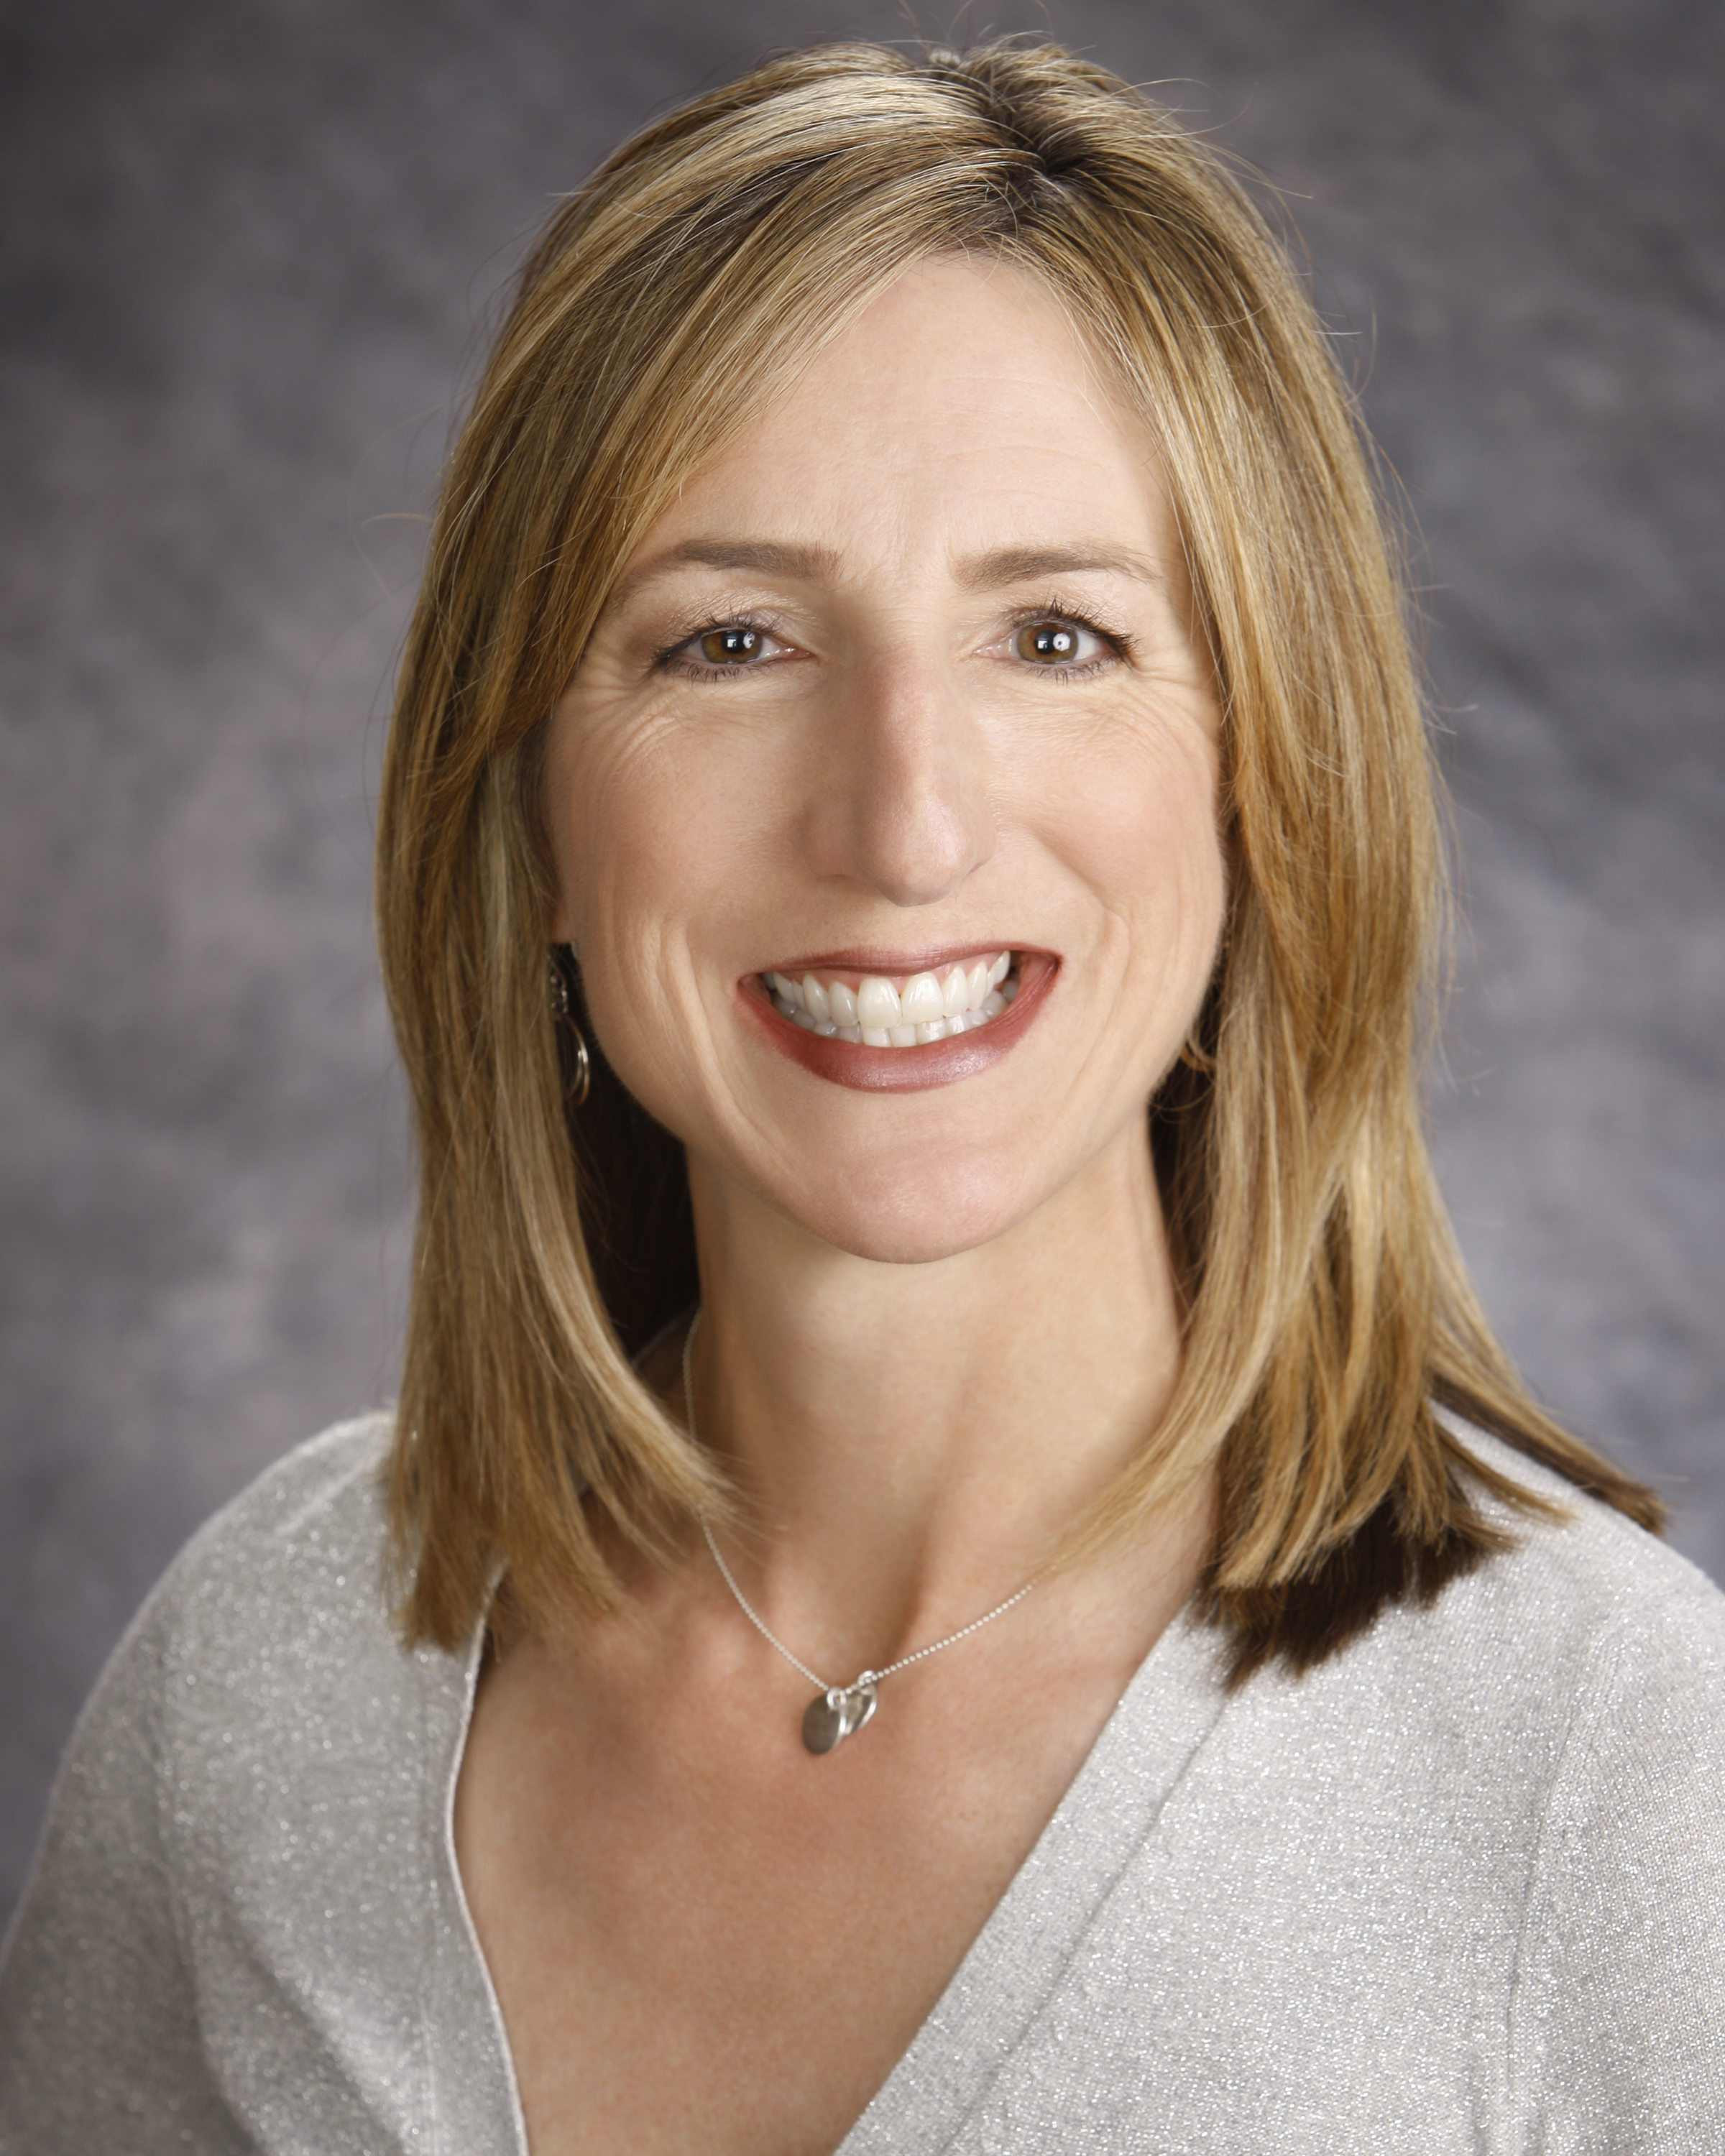 Monica Eigelberger, MD, FACS